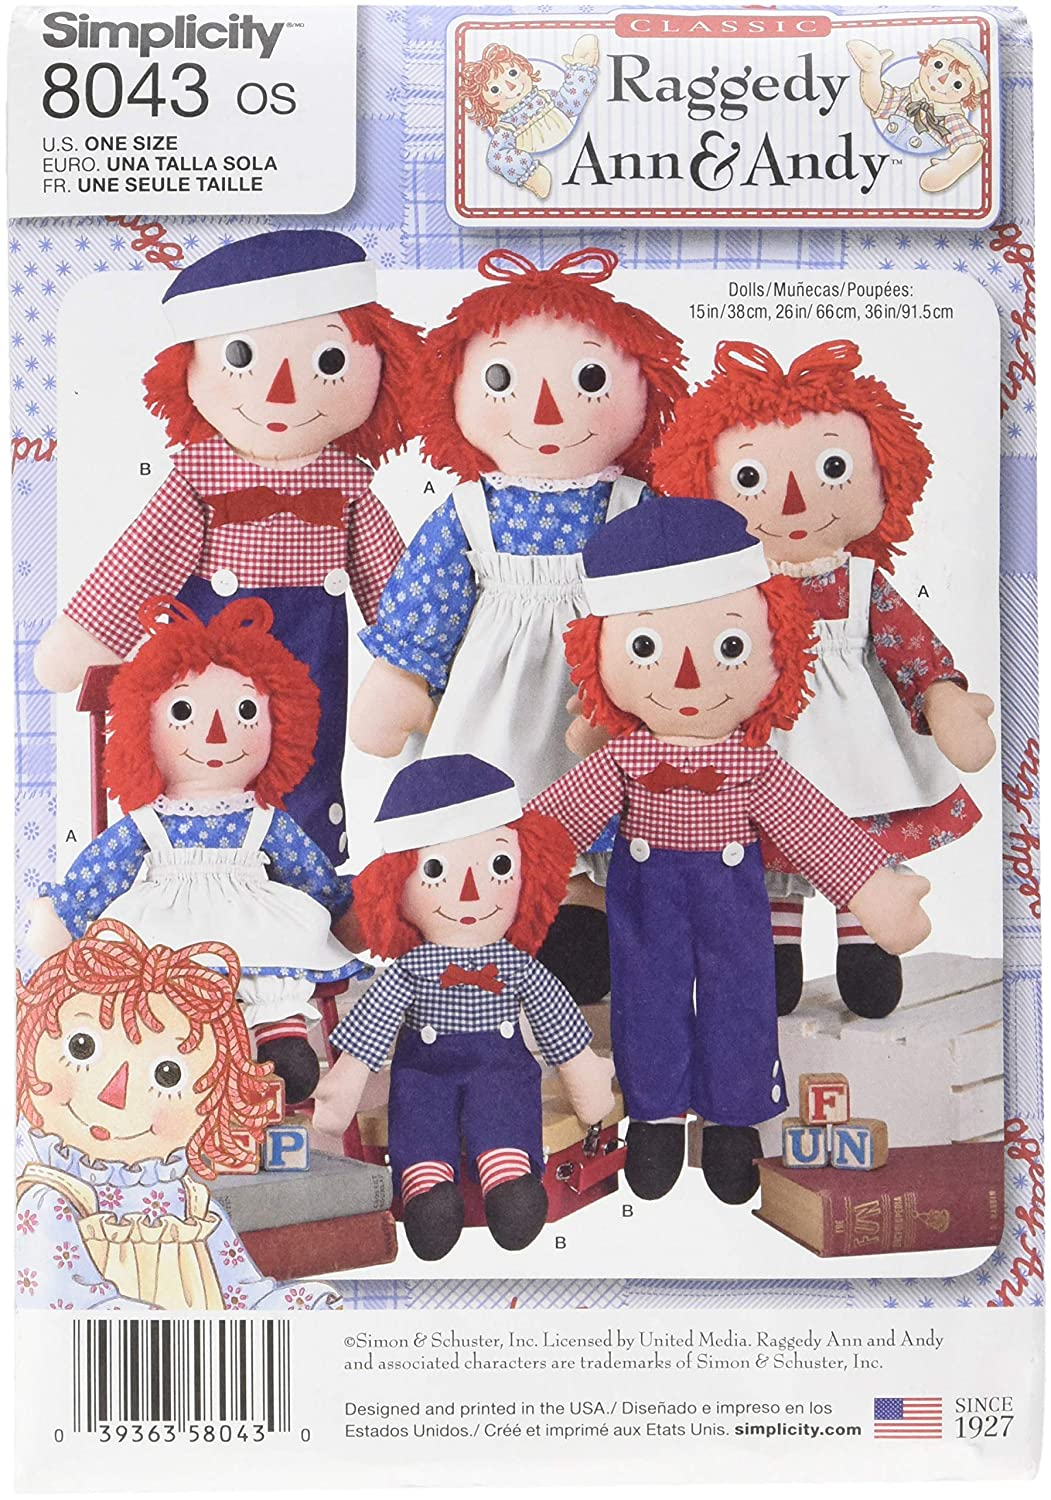 Simplicity Patterns Raggedy Ann & Andy Dolls Size: Os (One Size), 8043 OUTLOOK GROUP CORP US8043OS